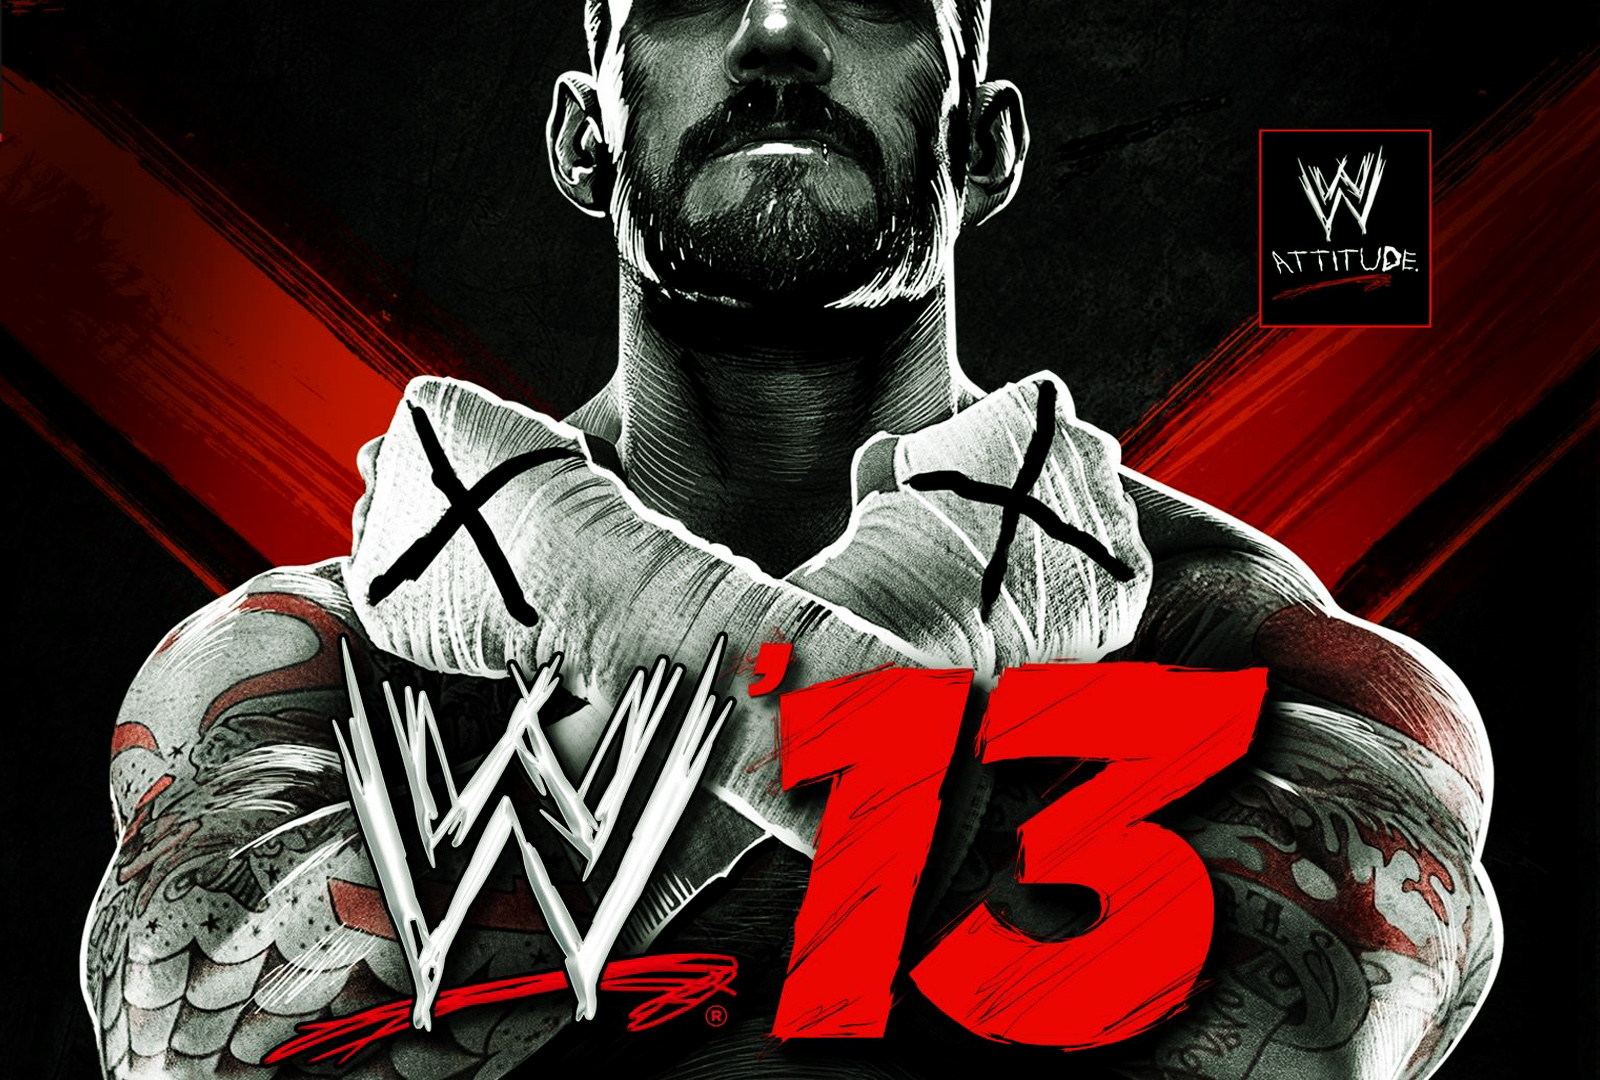 http://1.bp.blogspot.com/-YCkWspJ2PcI/UI767w8oMQI/AAAAAAAAFtQ/qYRMftEB3BI/s1600/WWE-13-Game-HD-Wallpaper_GameWallBase.Com.jpg